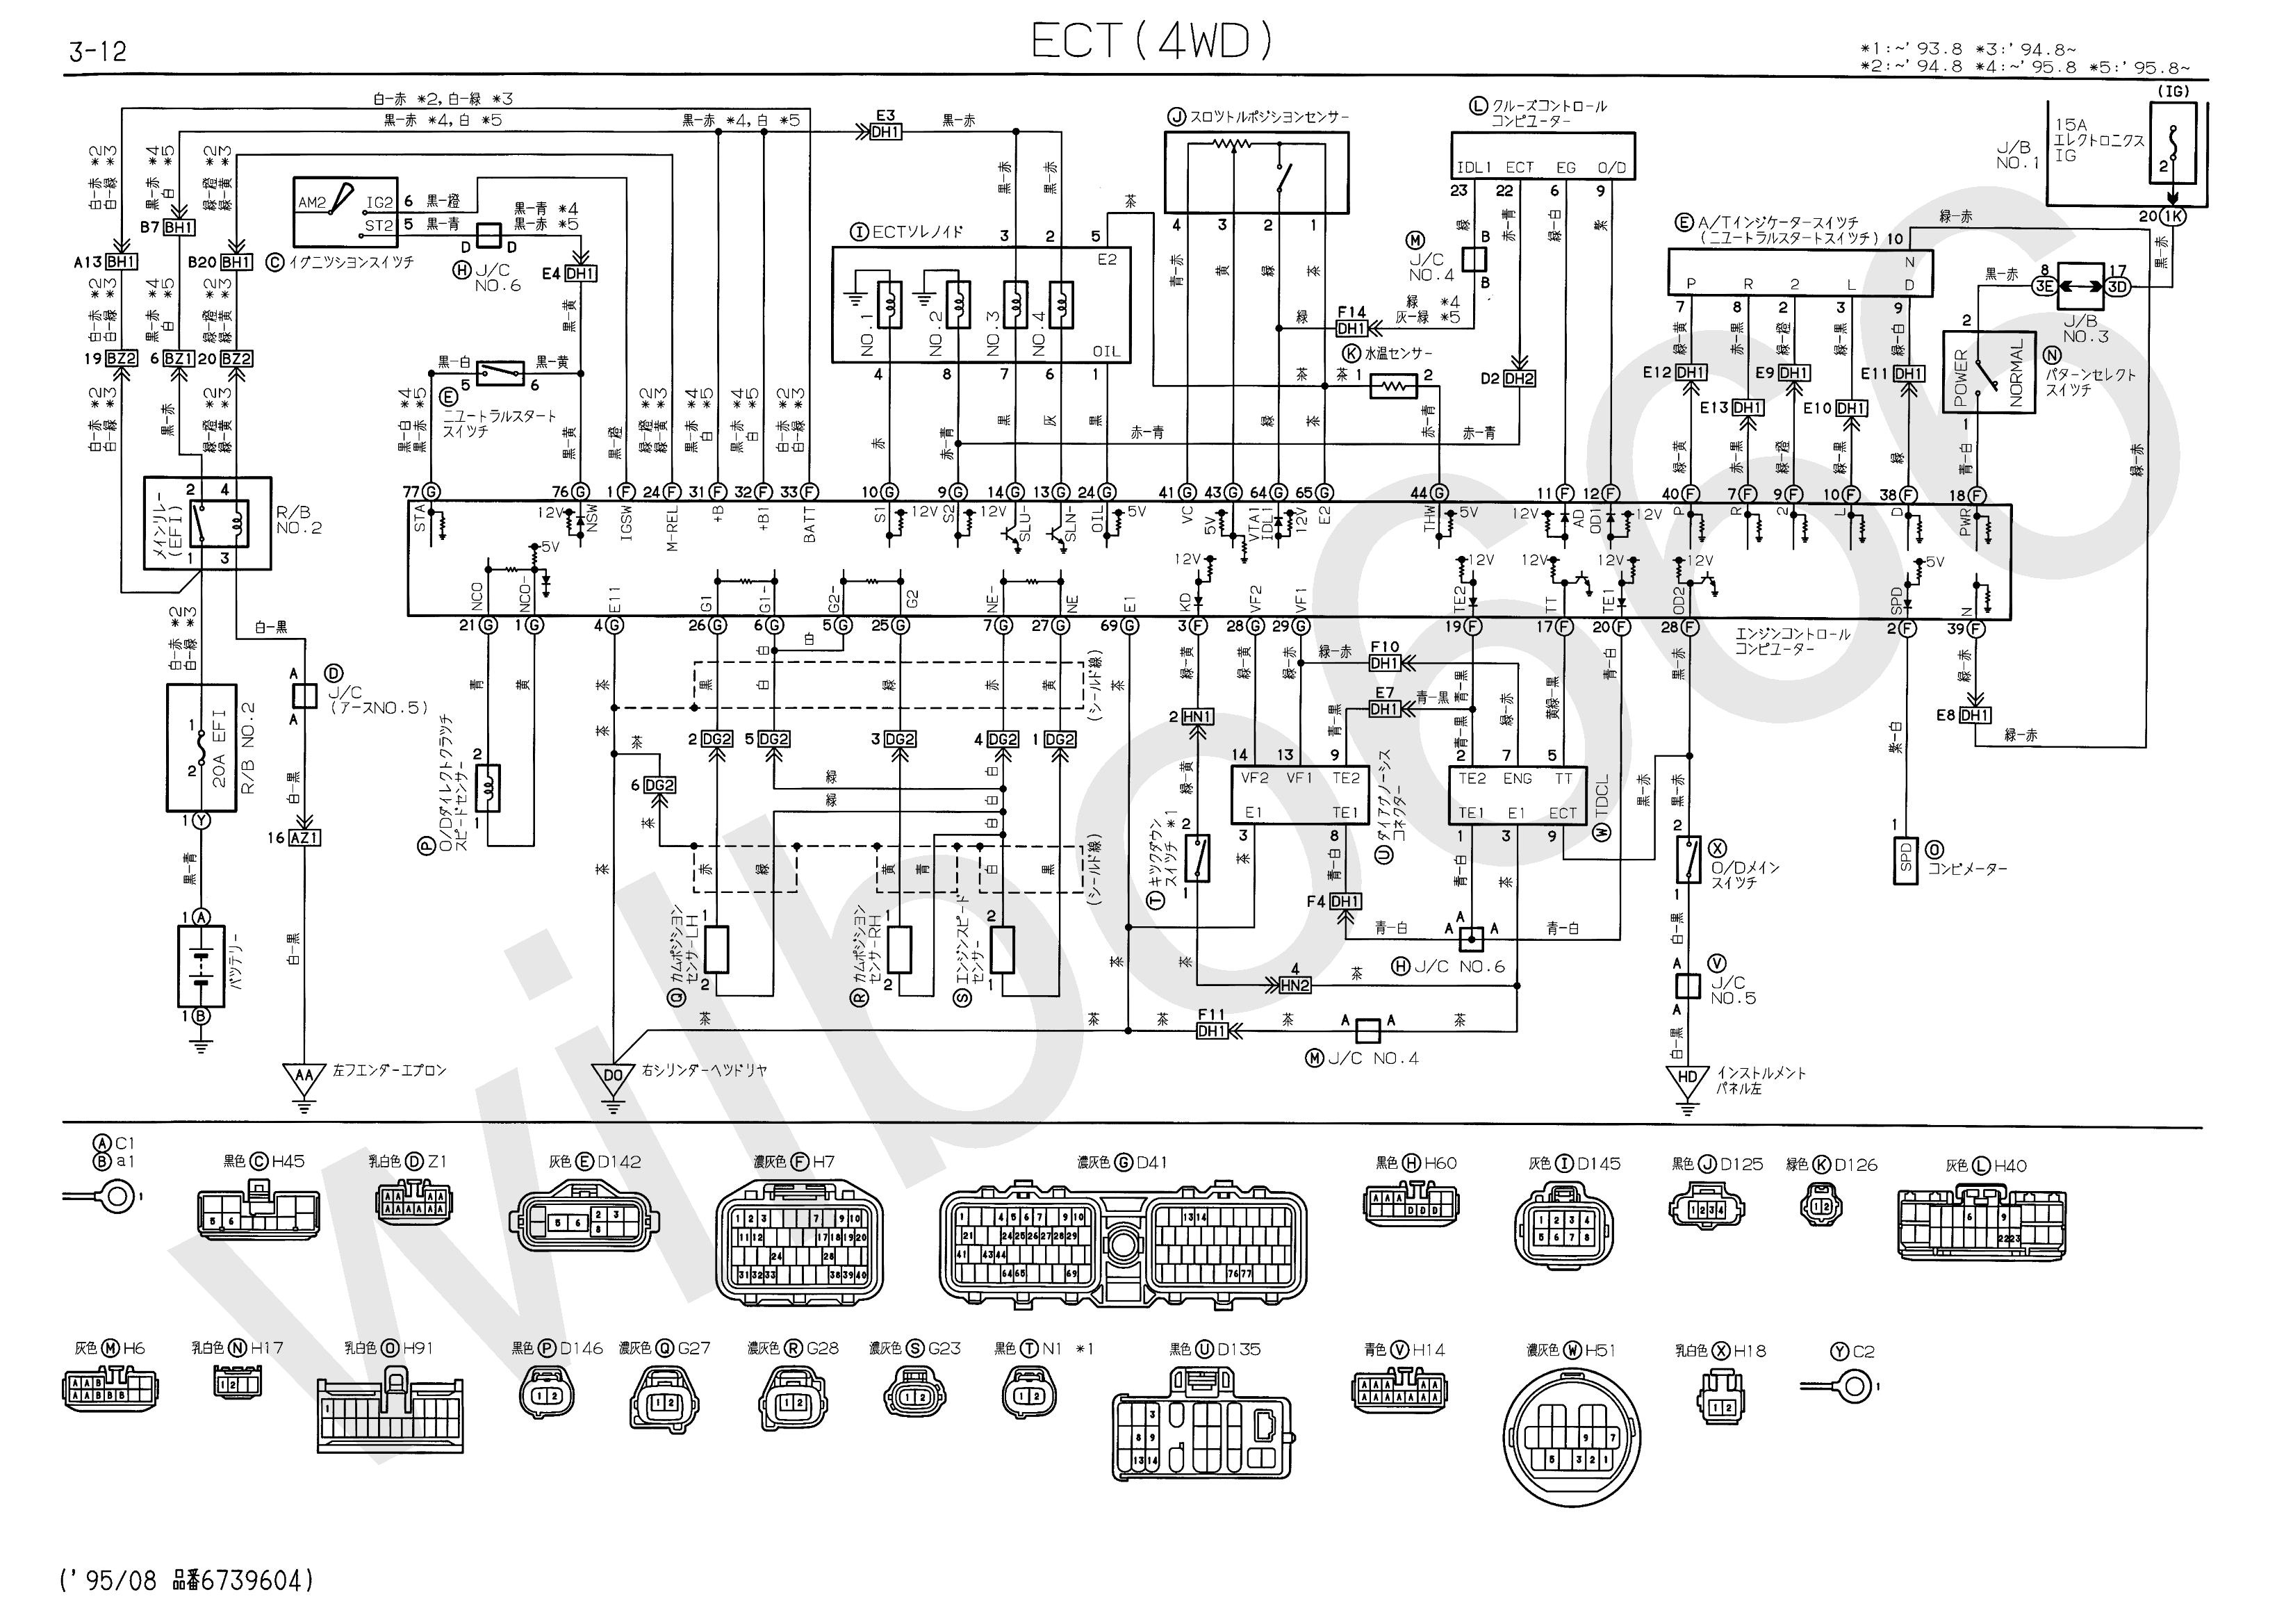 Wiring Diagram Yamaha Golf Cart G19et 37 Images For G19 Jzs14232c Uzs1423 Electrical 6739604 3 12resize